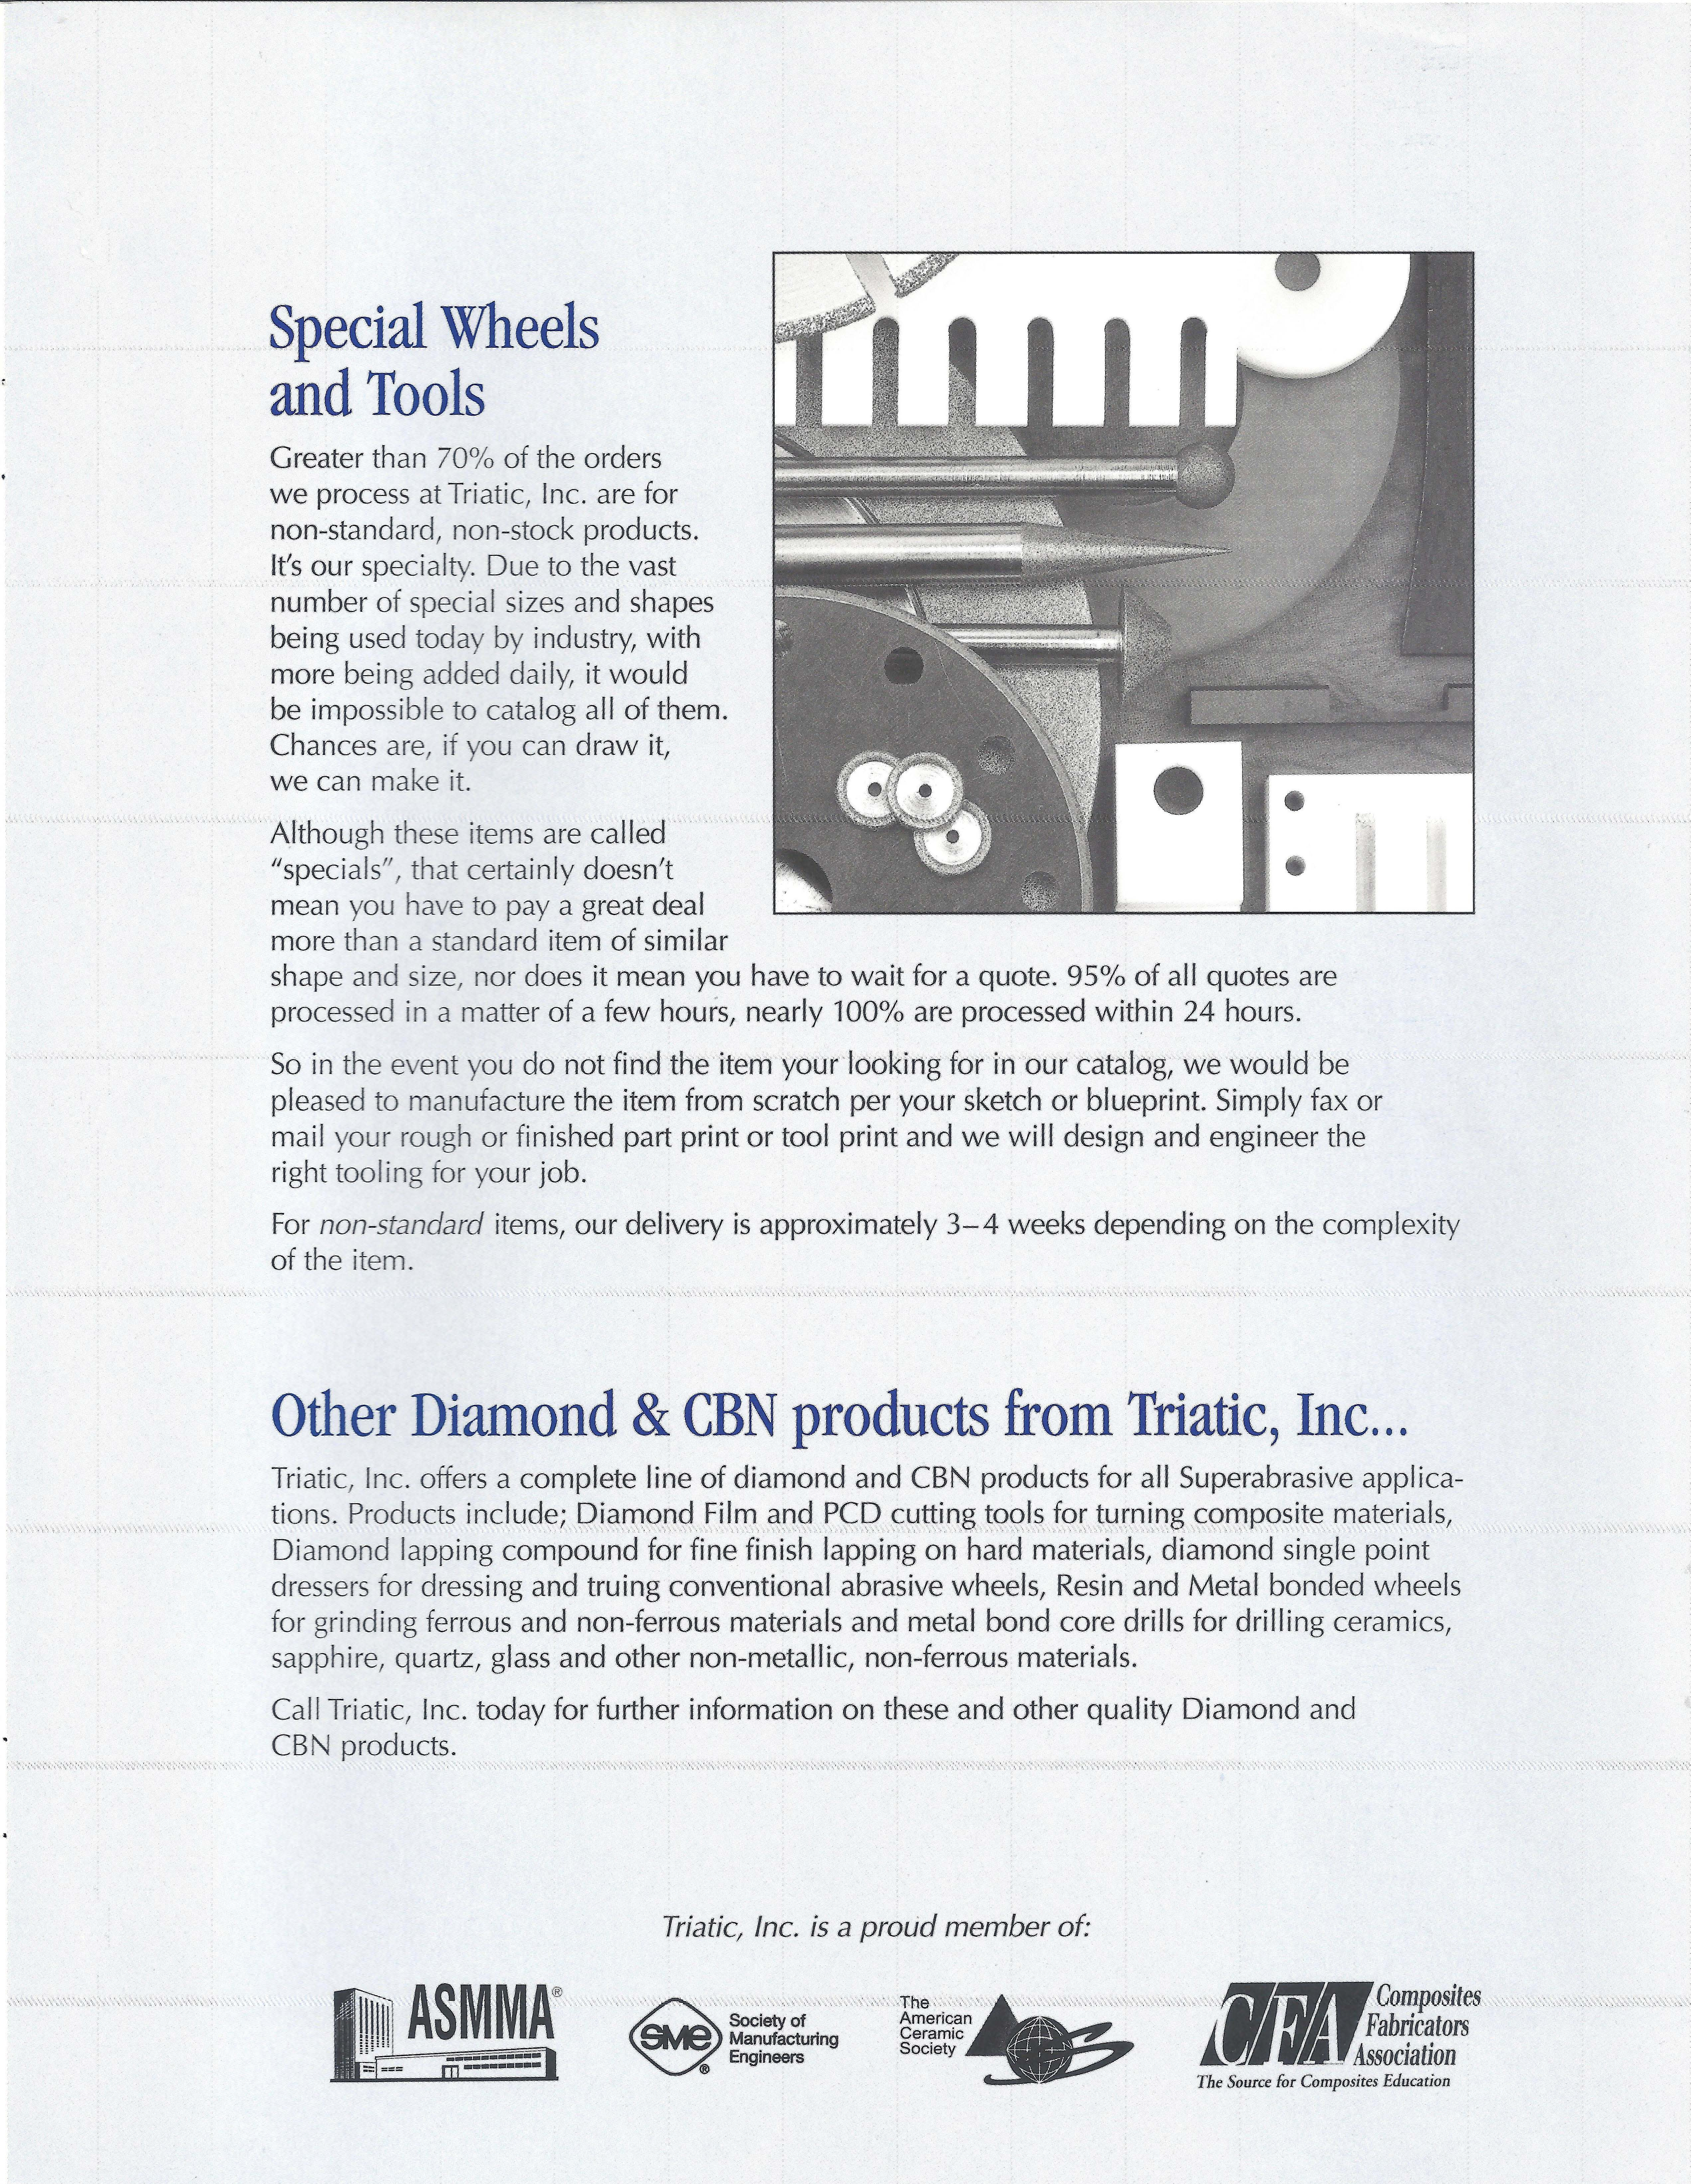 catalog-in-pdf-combined-page-23-image-0001.jpg